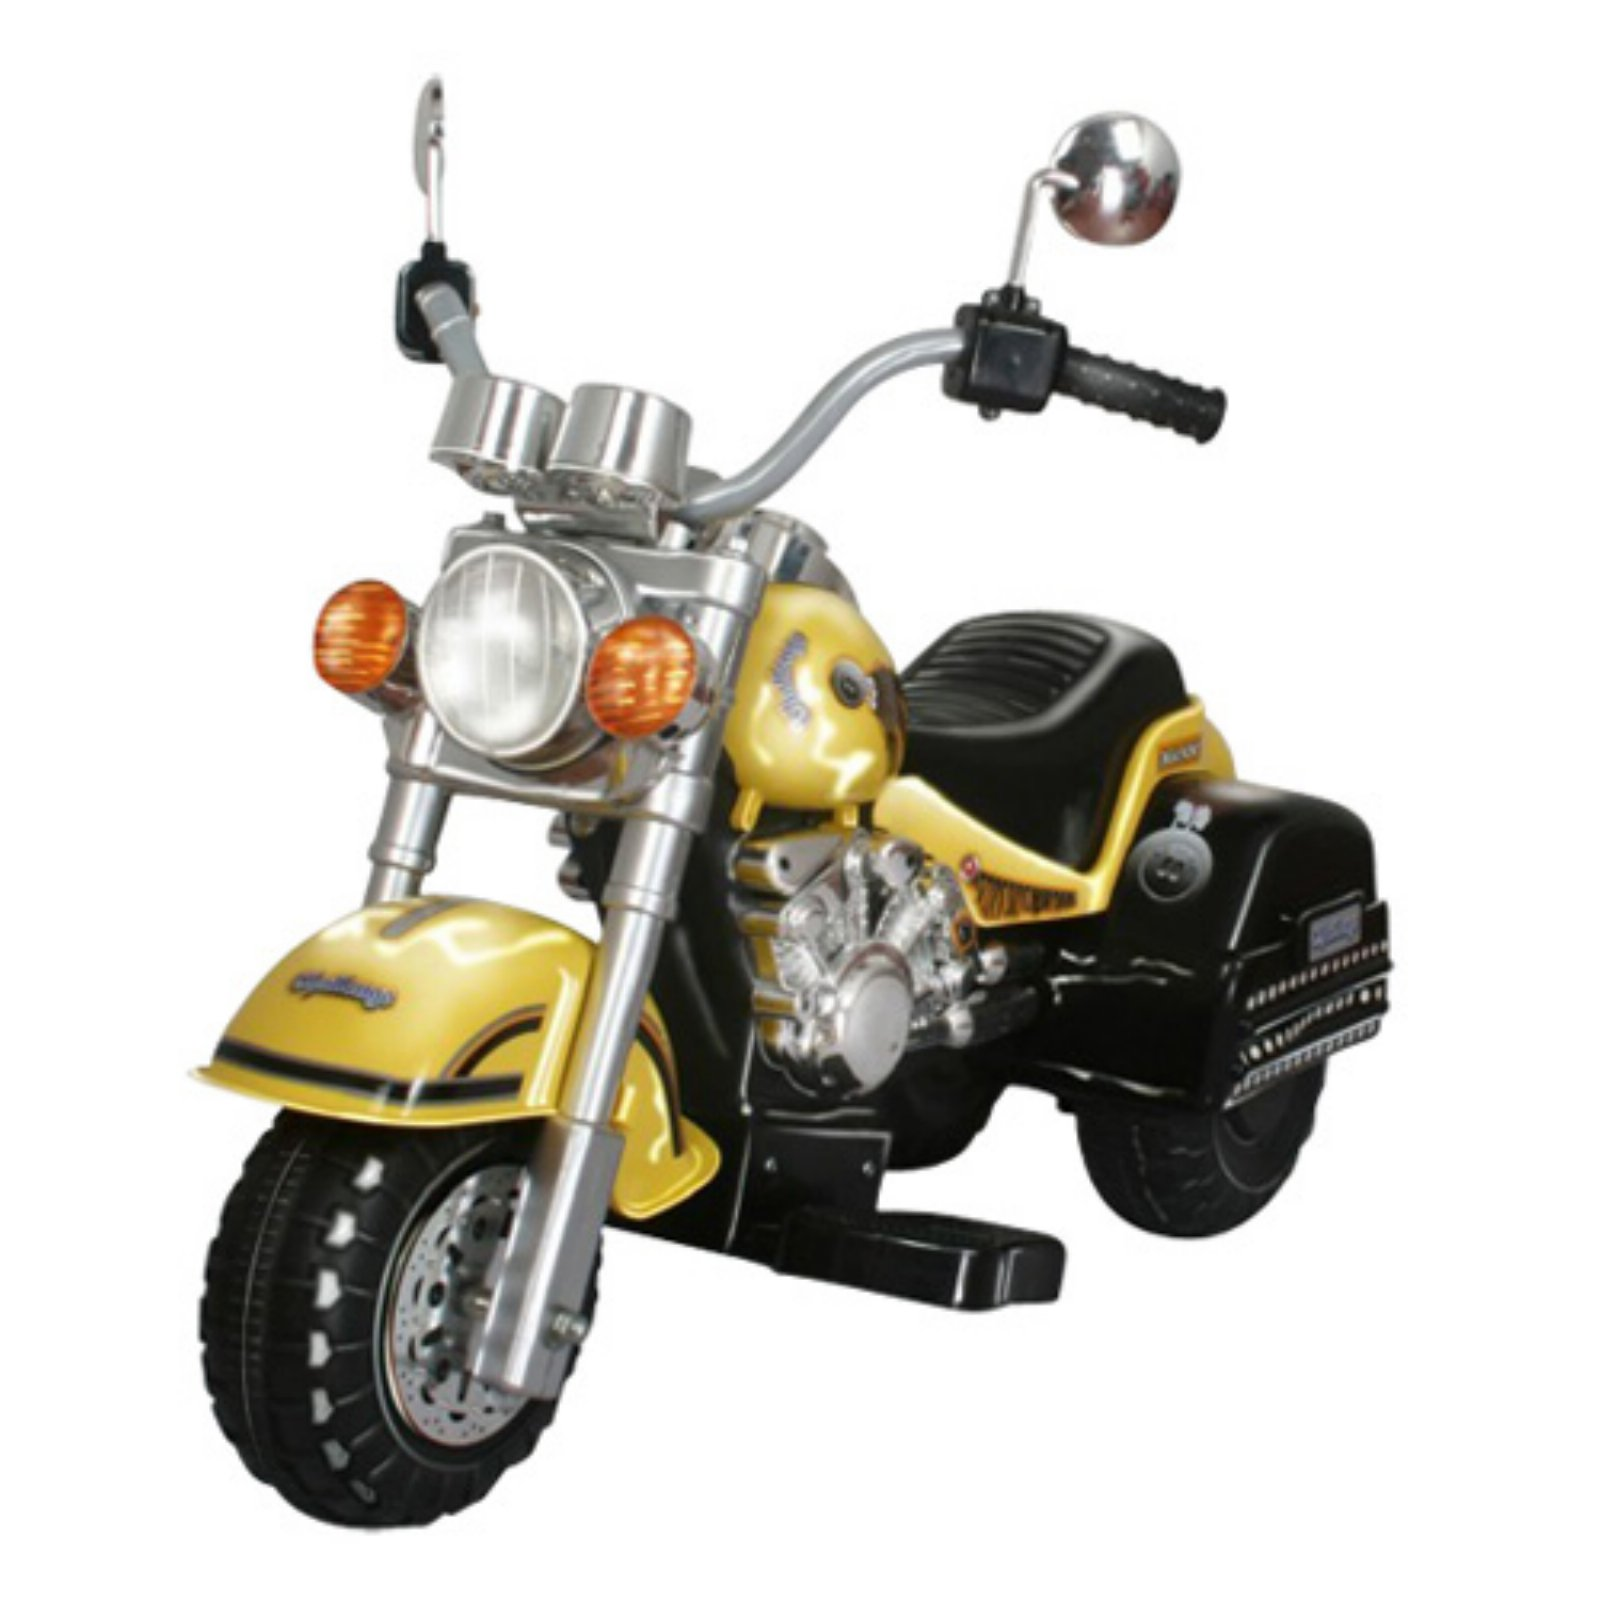 Merske Harley Chopper Style Motorcycle Battery Powered Riding Toy Yellow by Overstock